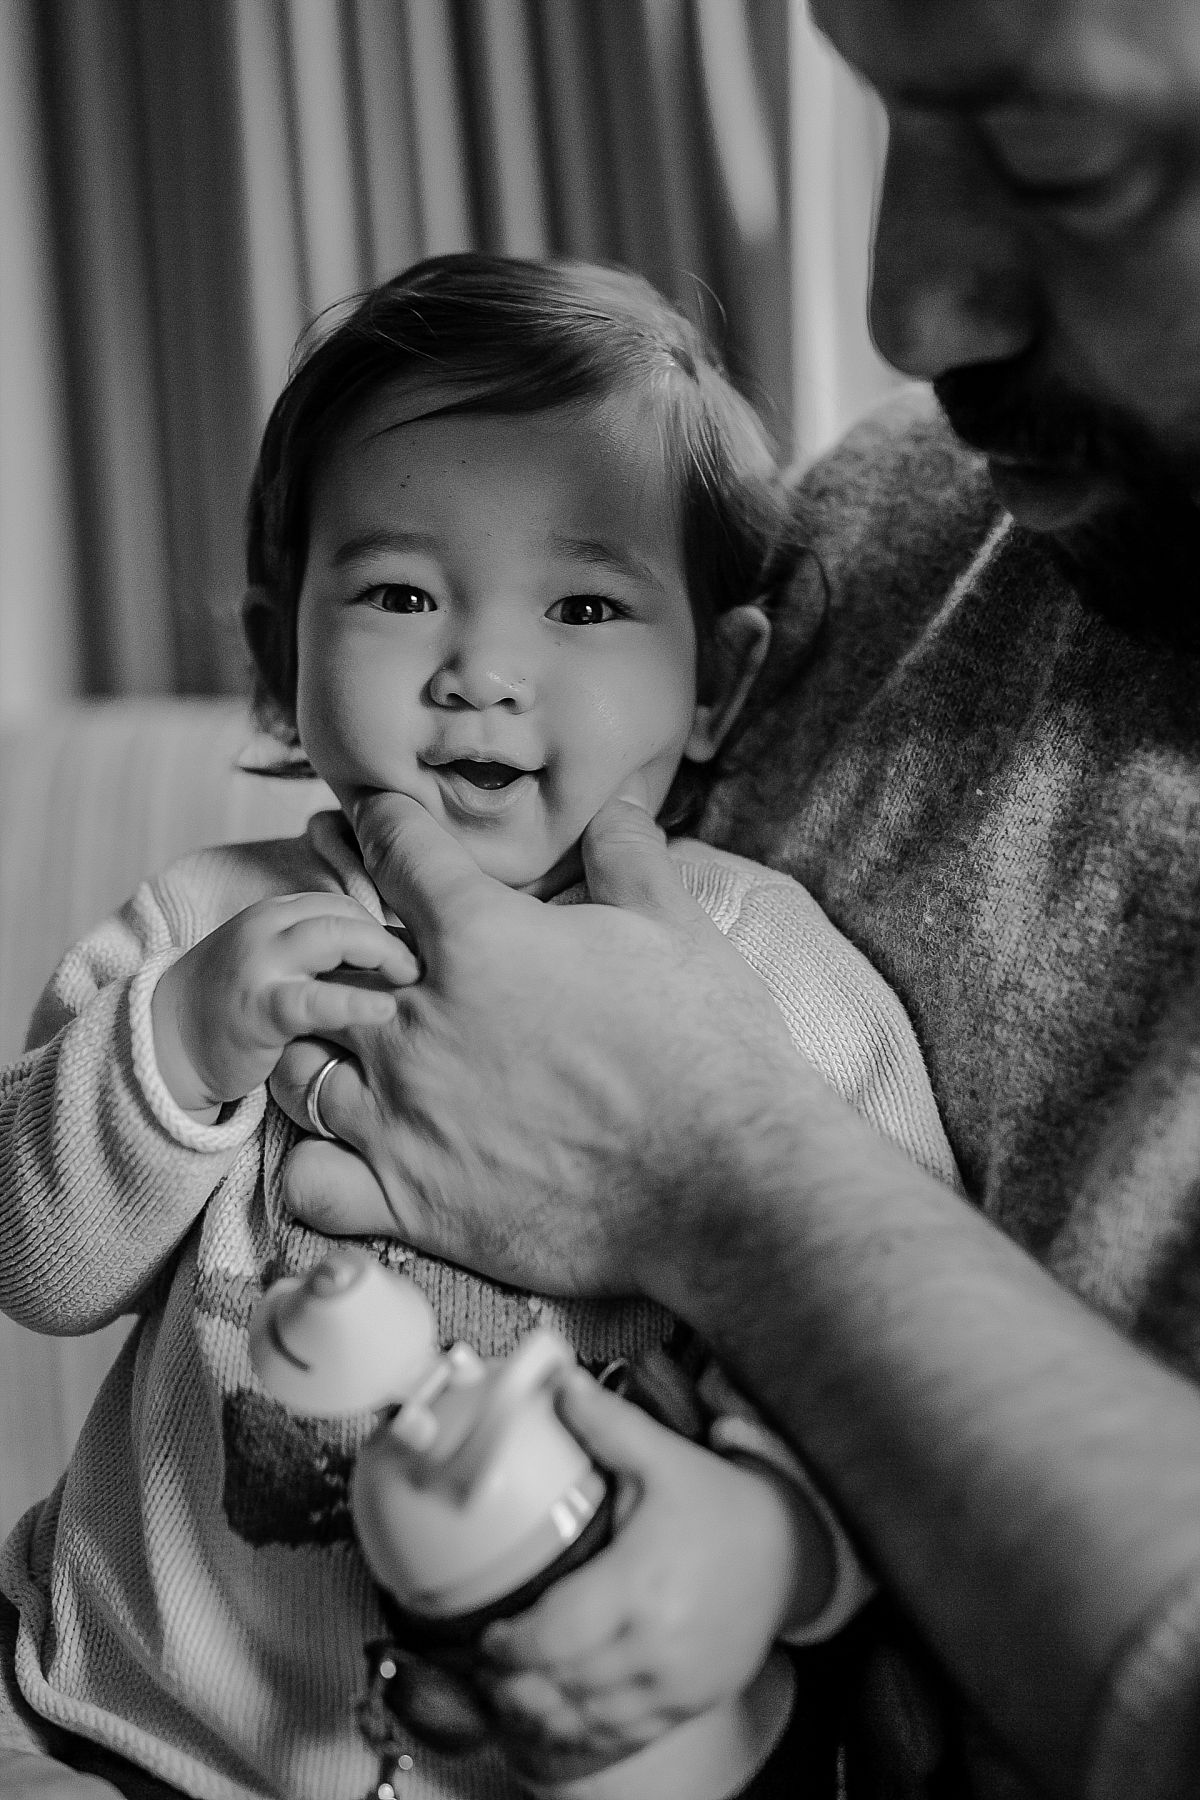 candid photo of dad squeezing daughter's cheeks while sitting on lap during family lifestyle photo session with Krystil McDowall photography